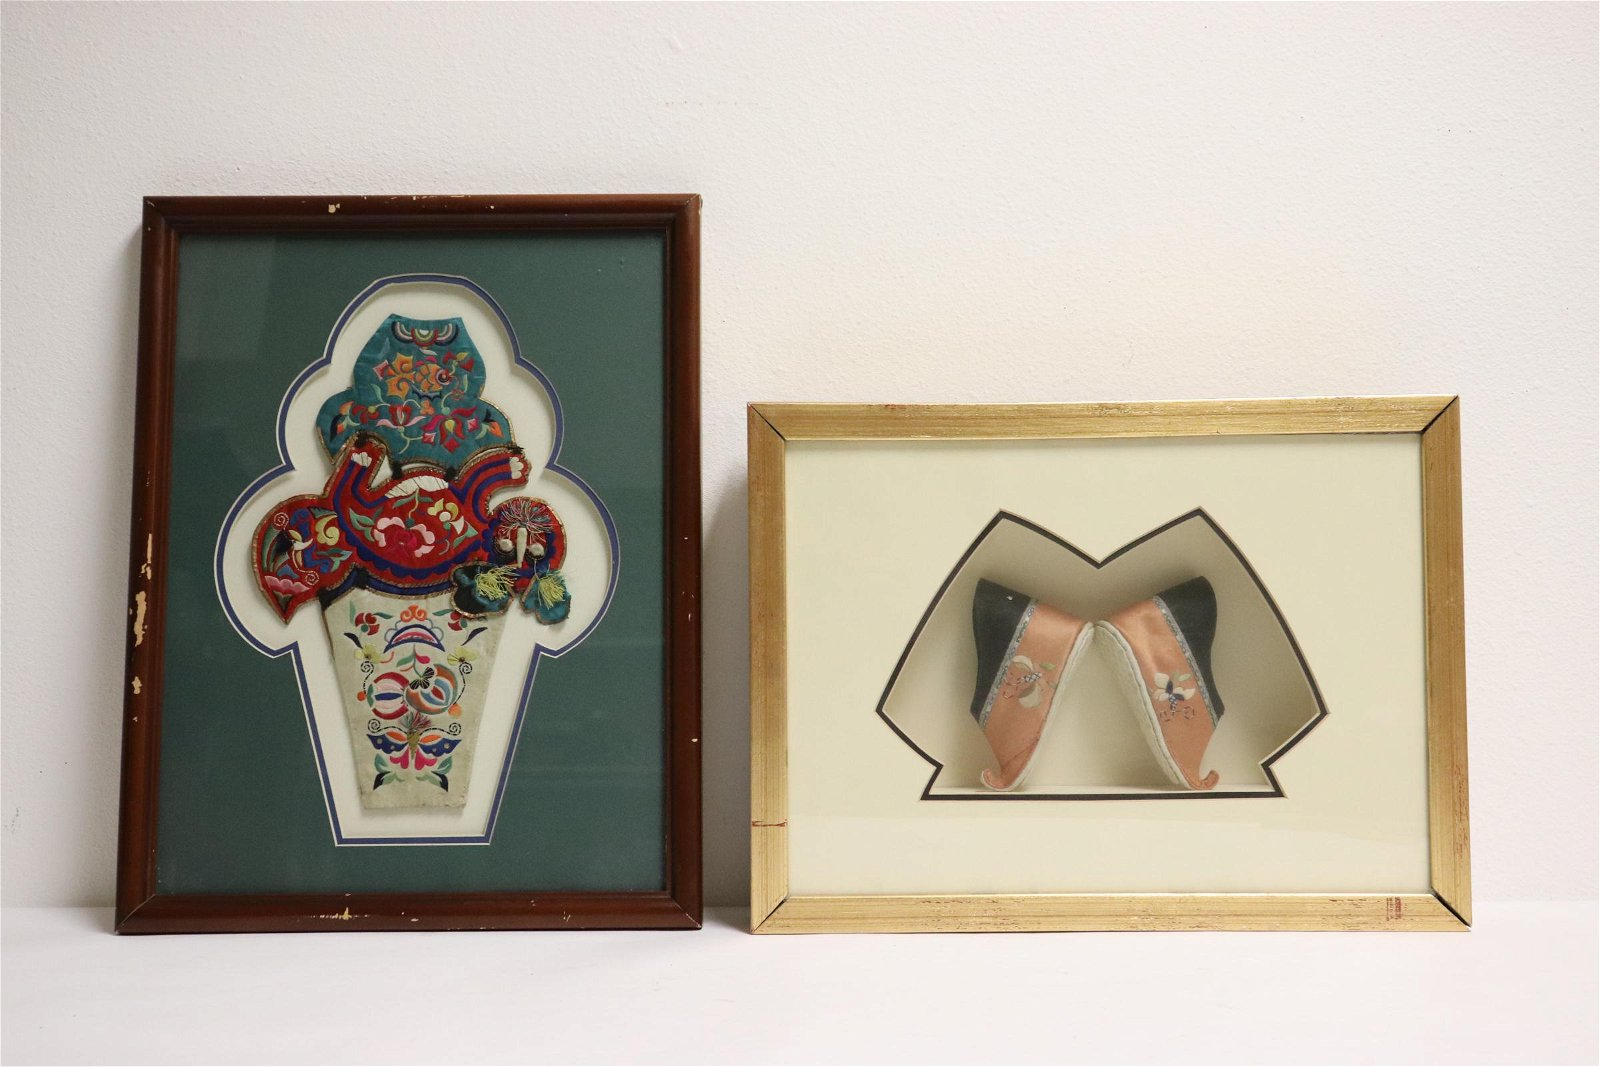 2 Chinese framed embroidery items